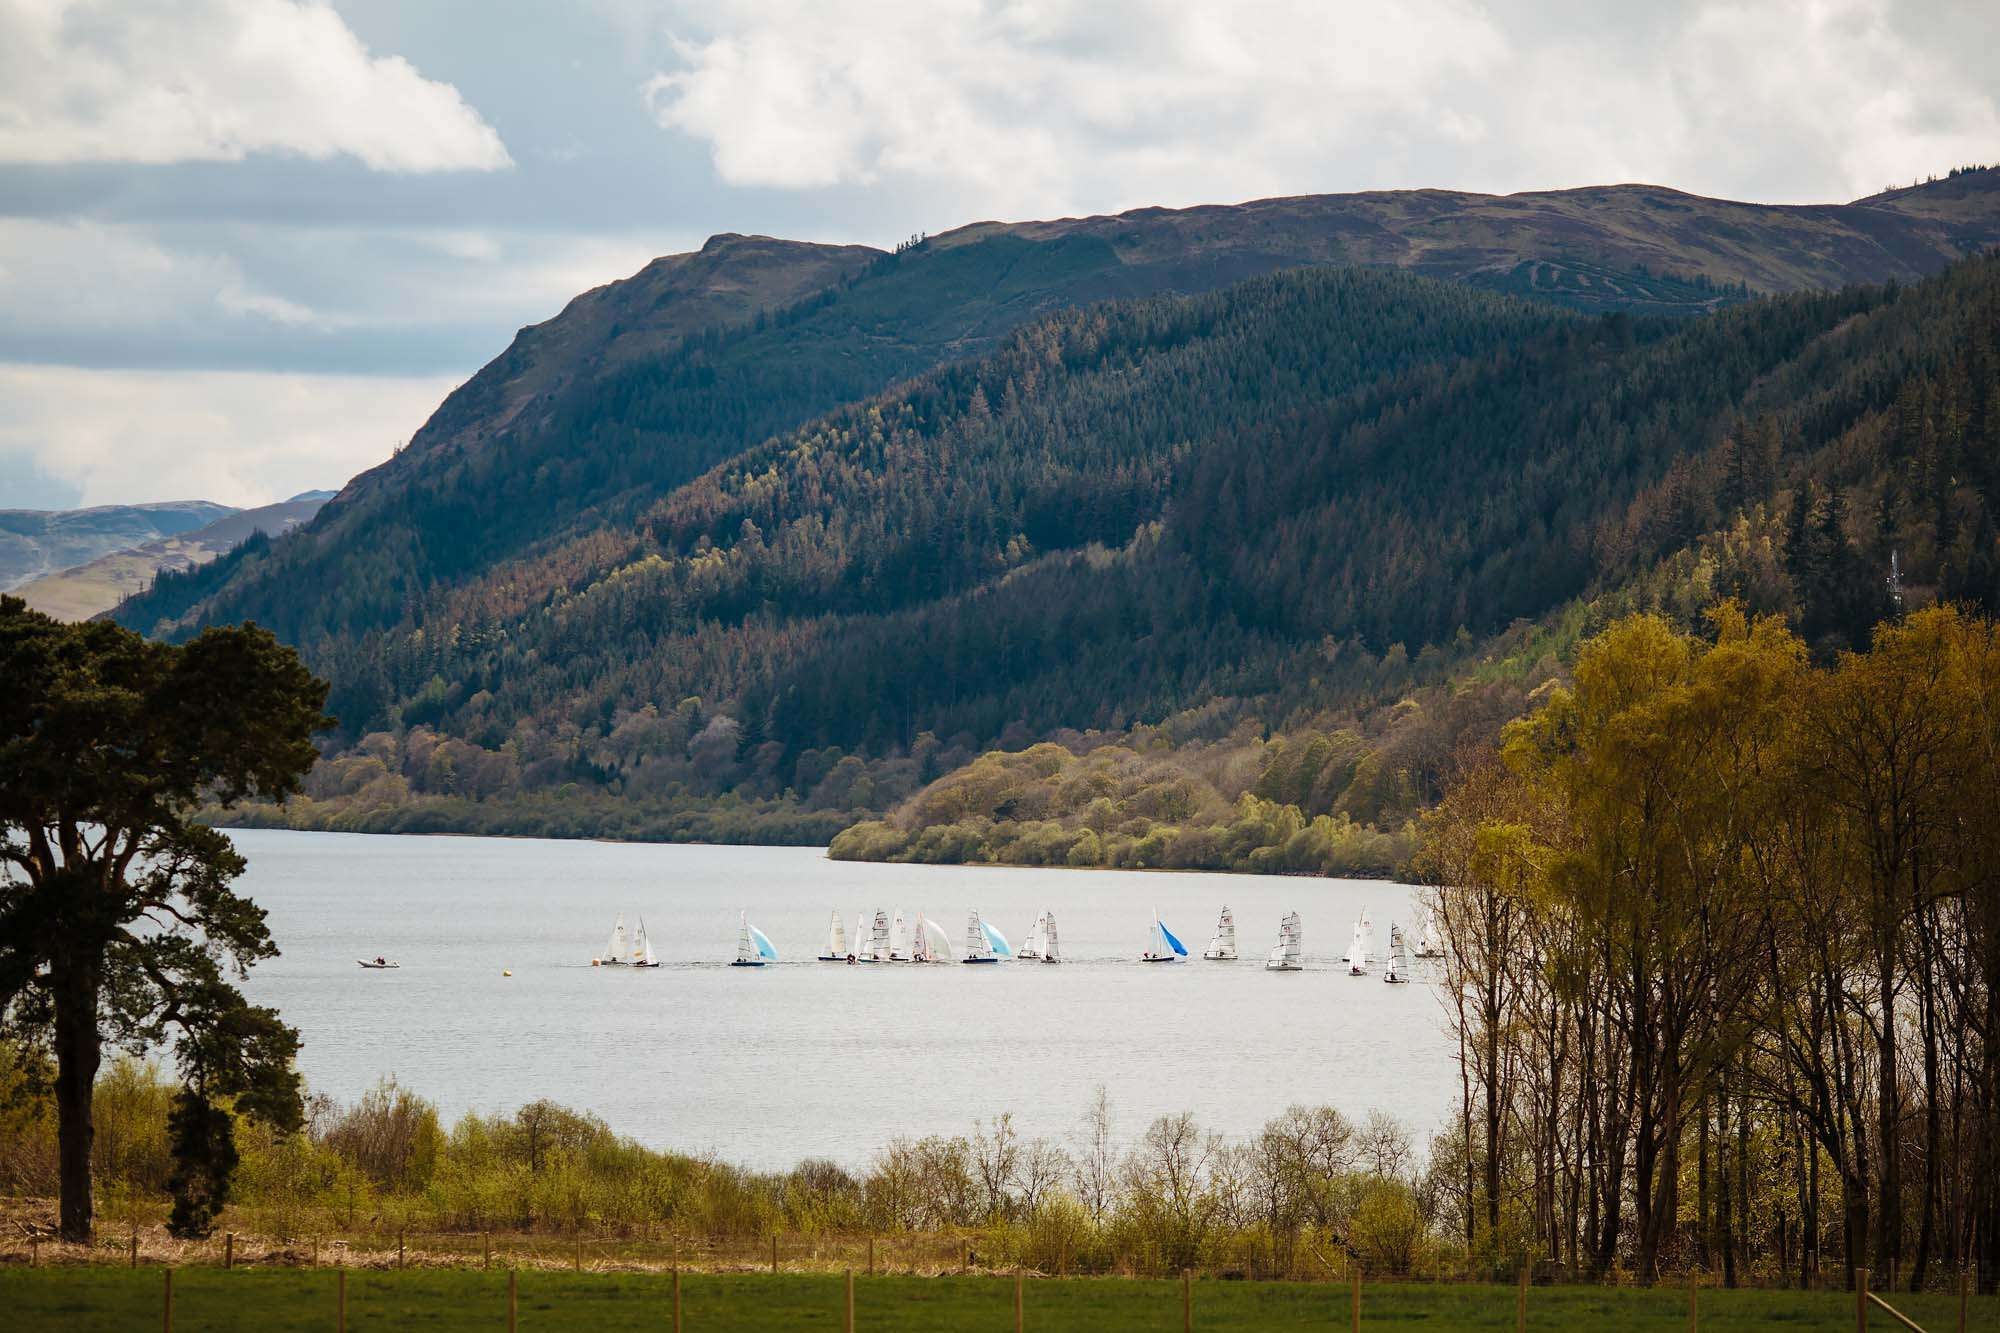 Sailing boats on Lake Bassenthwaite